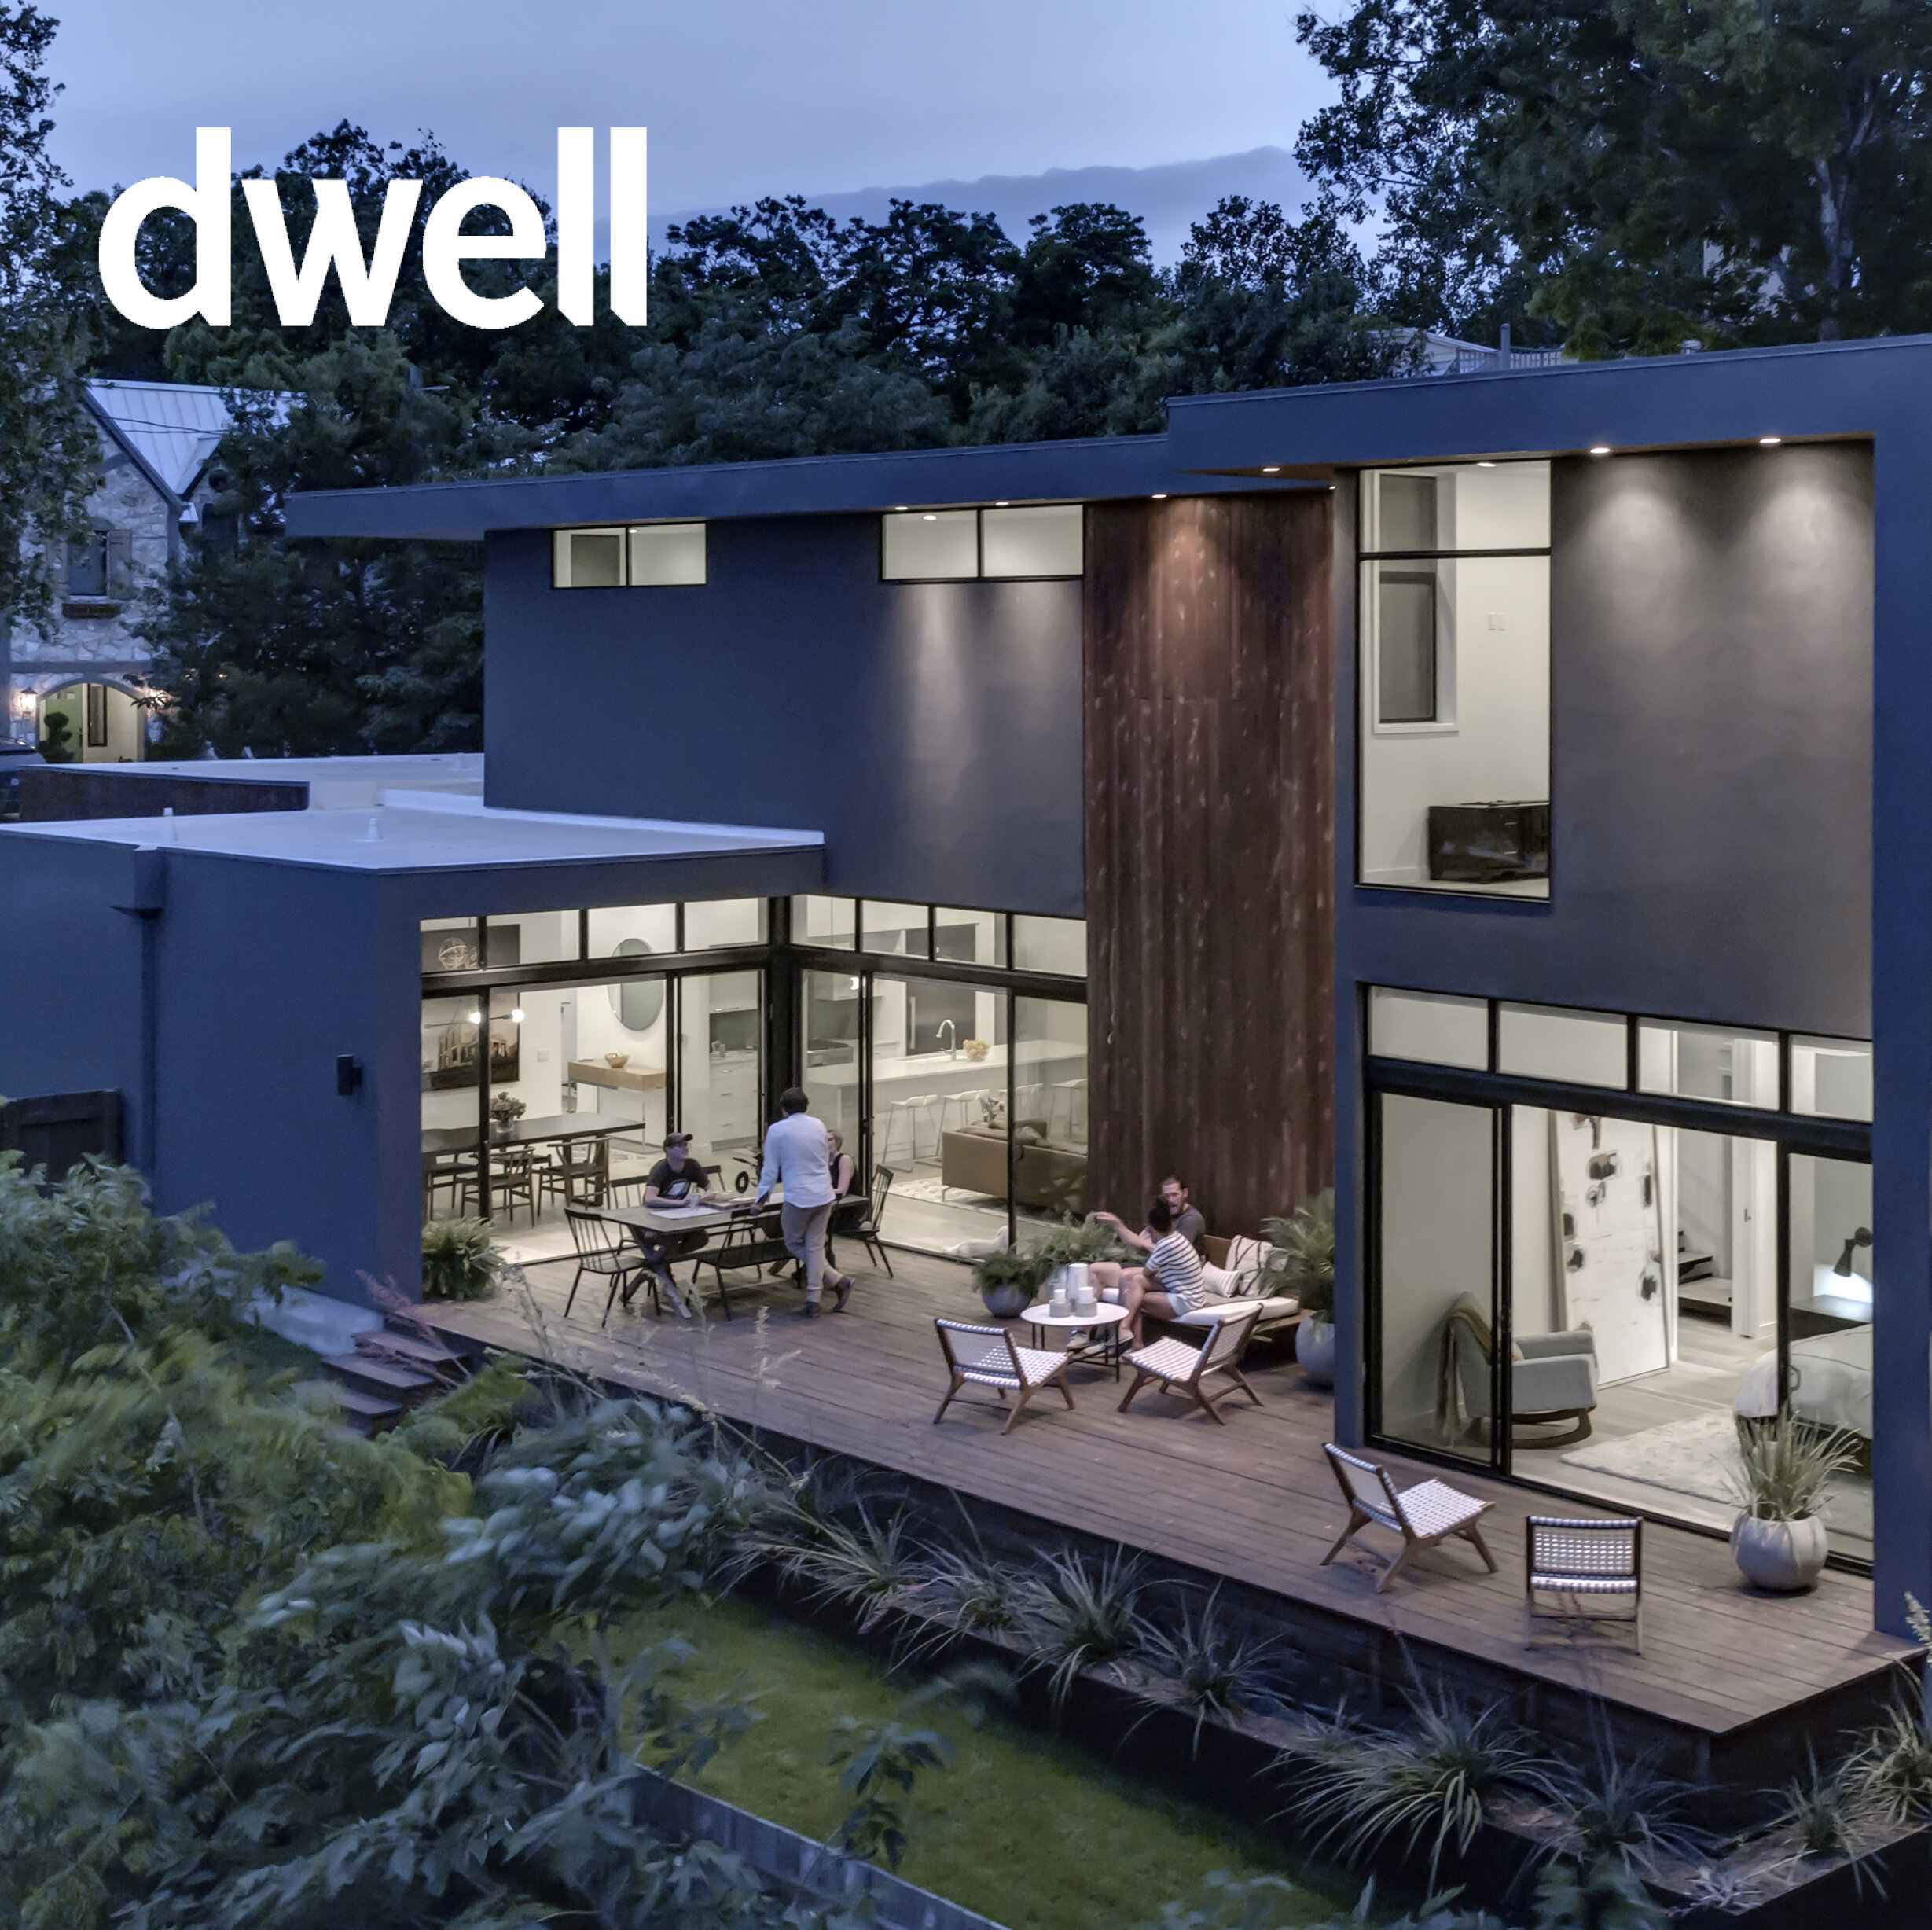 Dwell_2019_10_AddSubtract